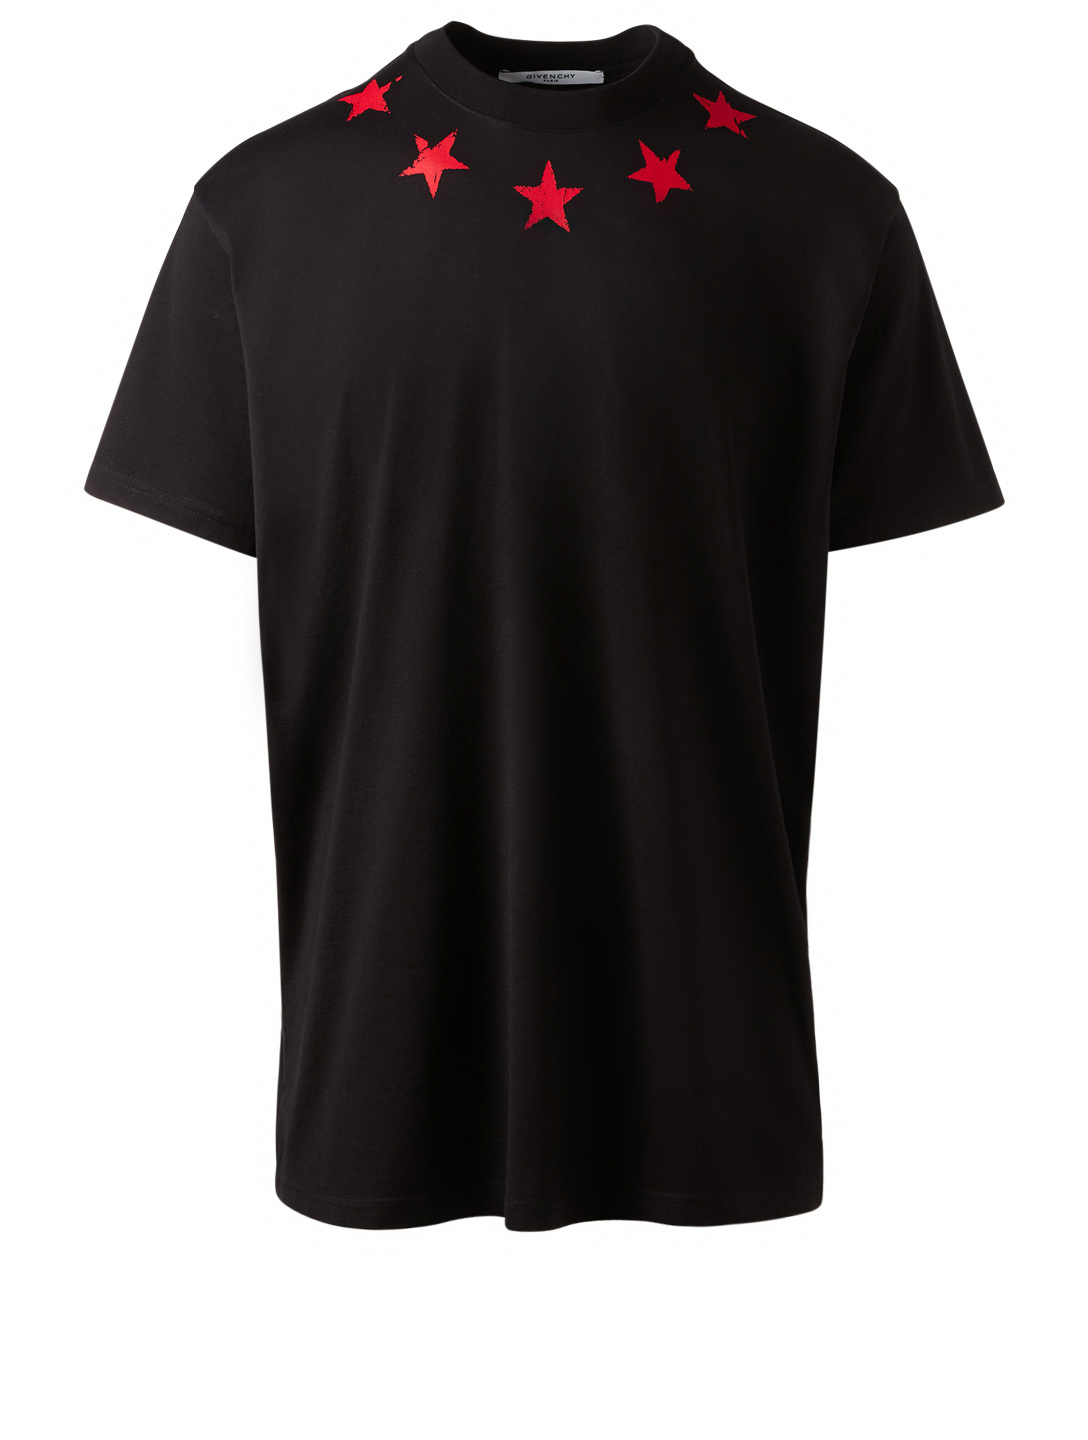 GIVENCHY Vintage Stars T-Shirt Men's Black